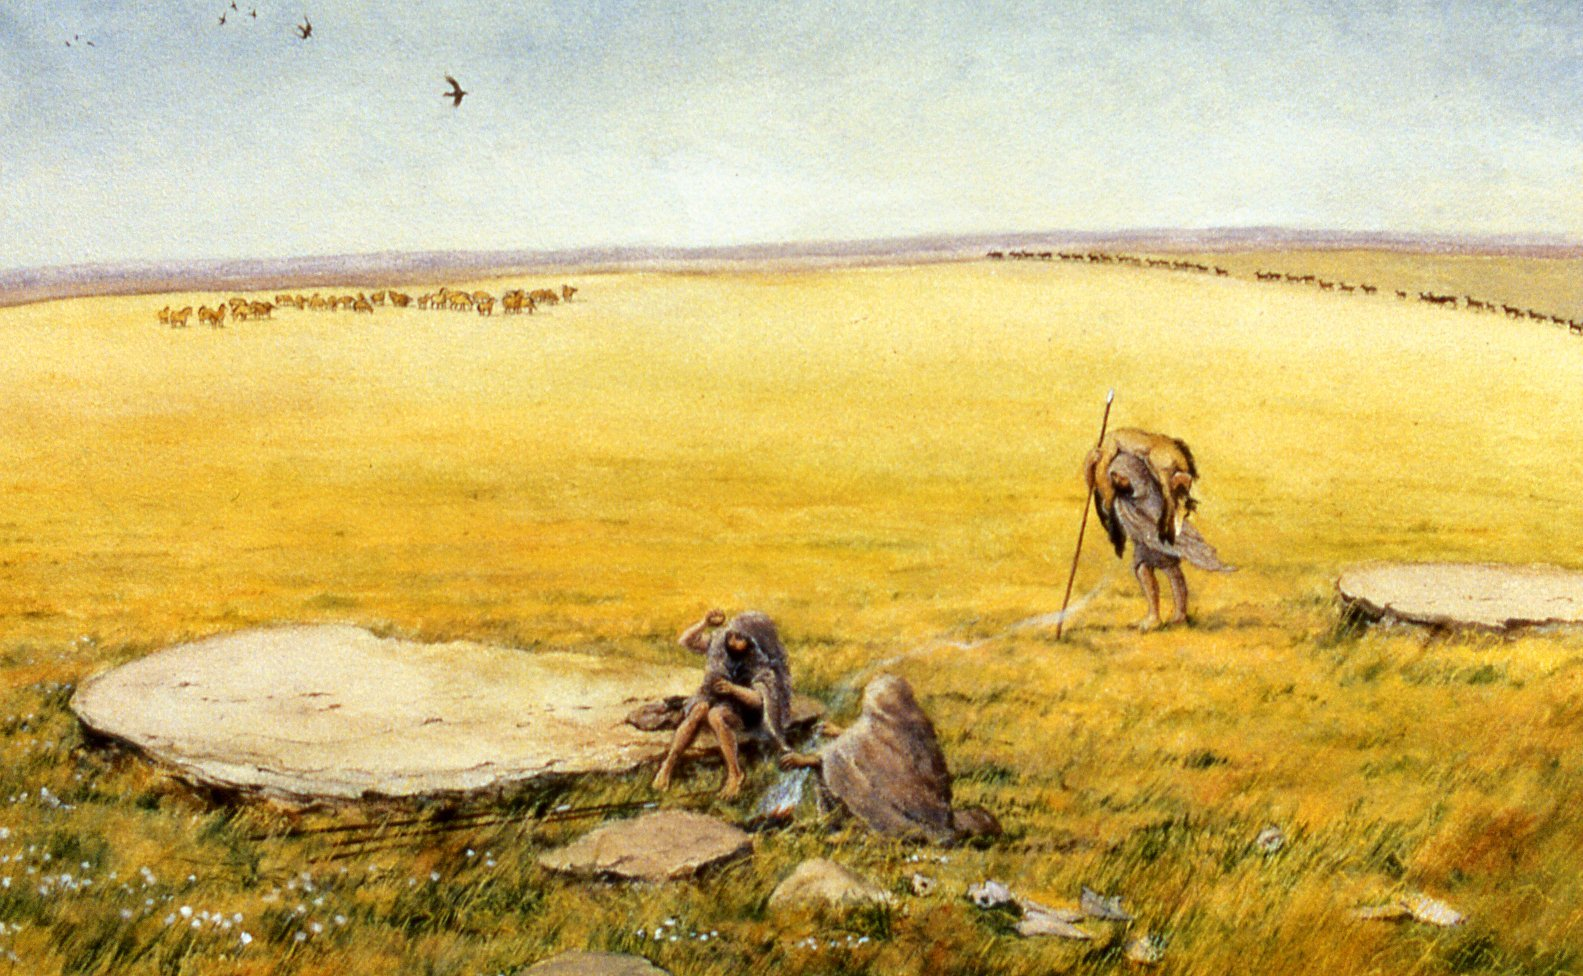 A painting of three figures in a grassy landscape, sitting around some cleared areas. Herds of animals can be seen in the distance.